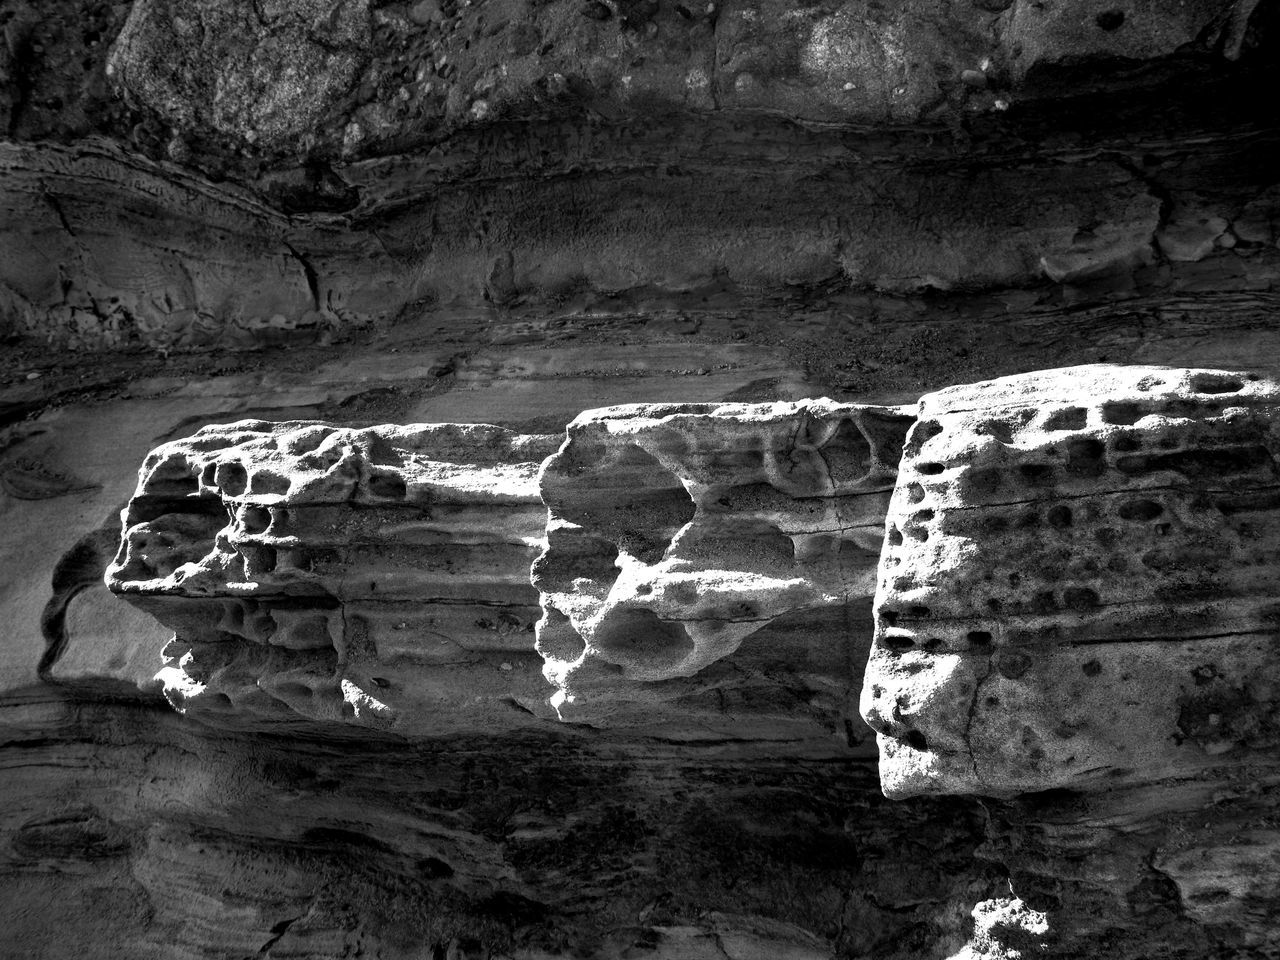 Arid Climate Beauty In Nature Black & White Eroded Geology Idyllic Landscape Natural Pattern Nature Non Urban Scene Outdoors Physical Geography Remote Rock Rock Formation Rock Outcrop Scenics Simple Beauty Tourism Tranquil Scene Tranquility Travel Destinations Unique Beauty Unique Perspectives Unusual Beauty